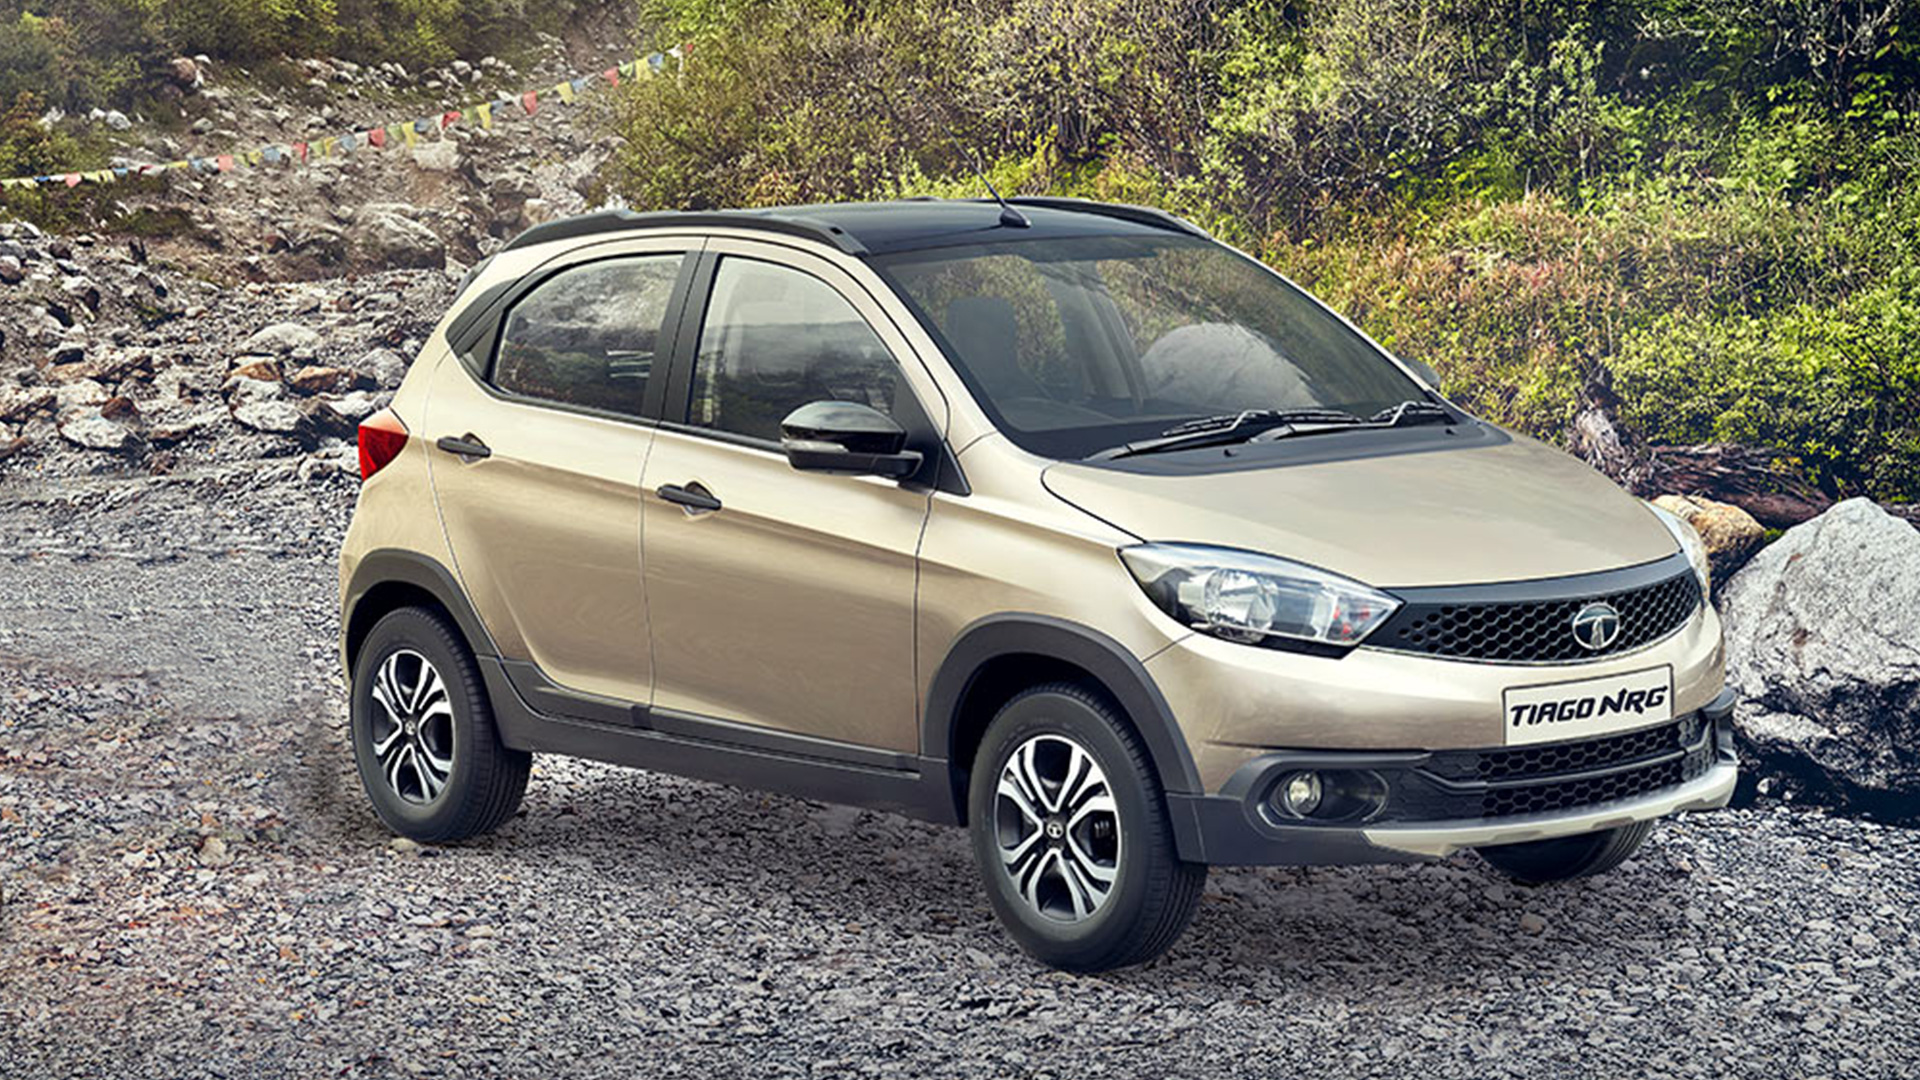 Tata Tiago 2018 NRG Petrol - Price, Mileage, Reviews ...